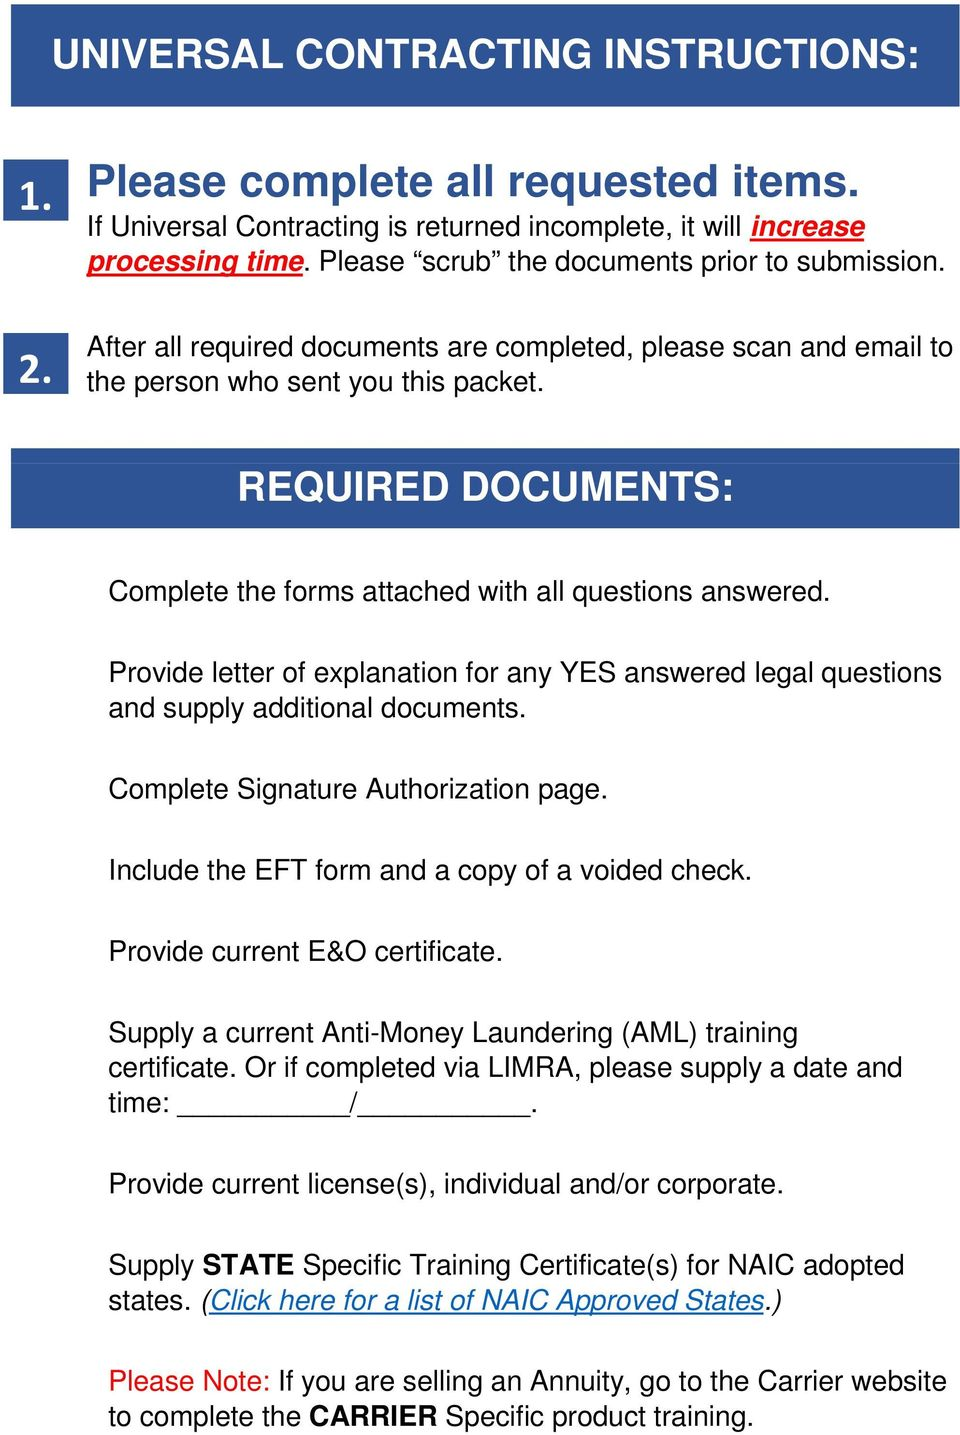 REQUIRED DOCUMENTS: Complete the forms attached with all questions answered. Provide letter of explanation for any YES answered legal questions and supply additional documents.